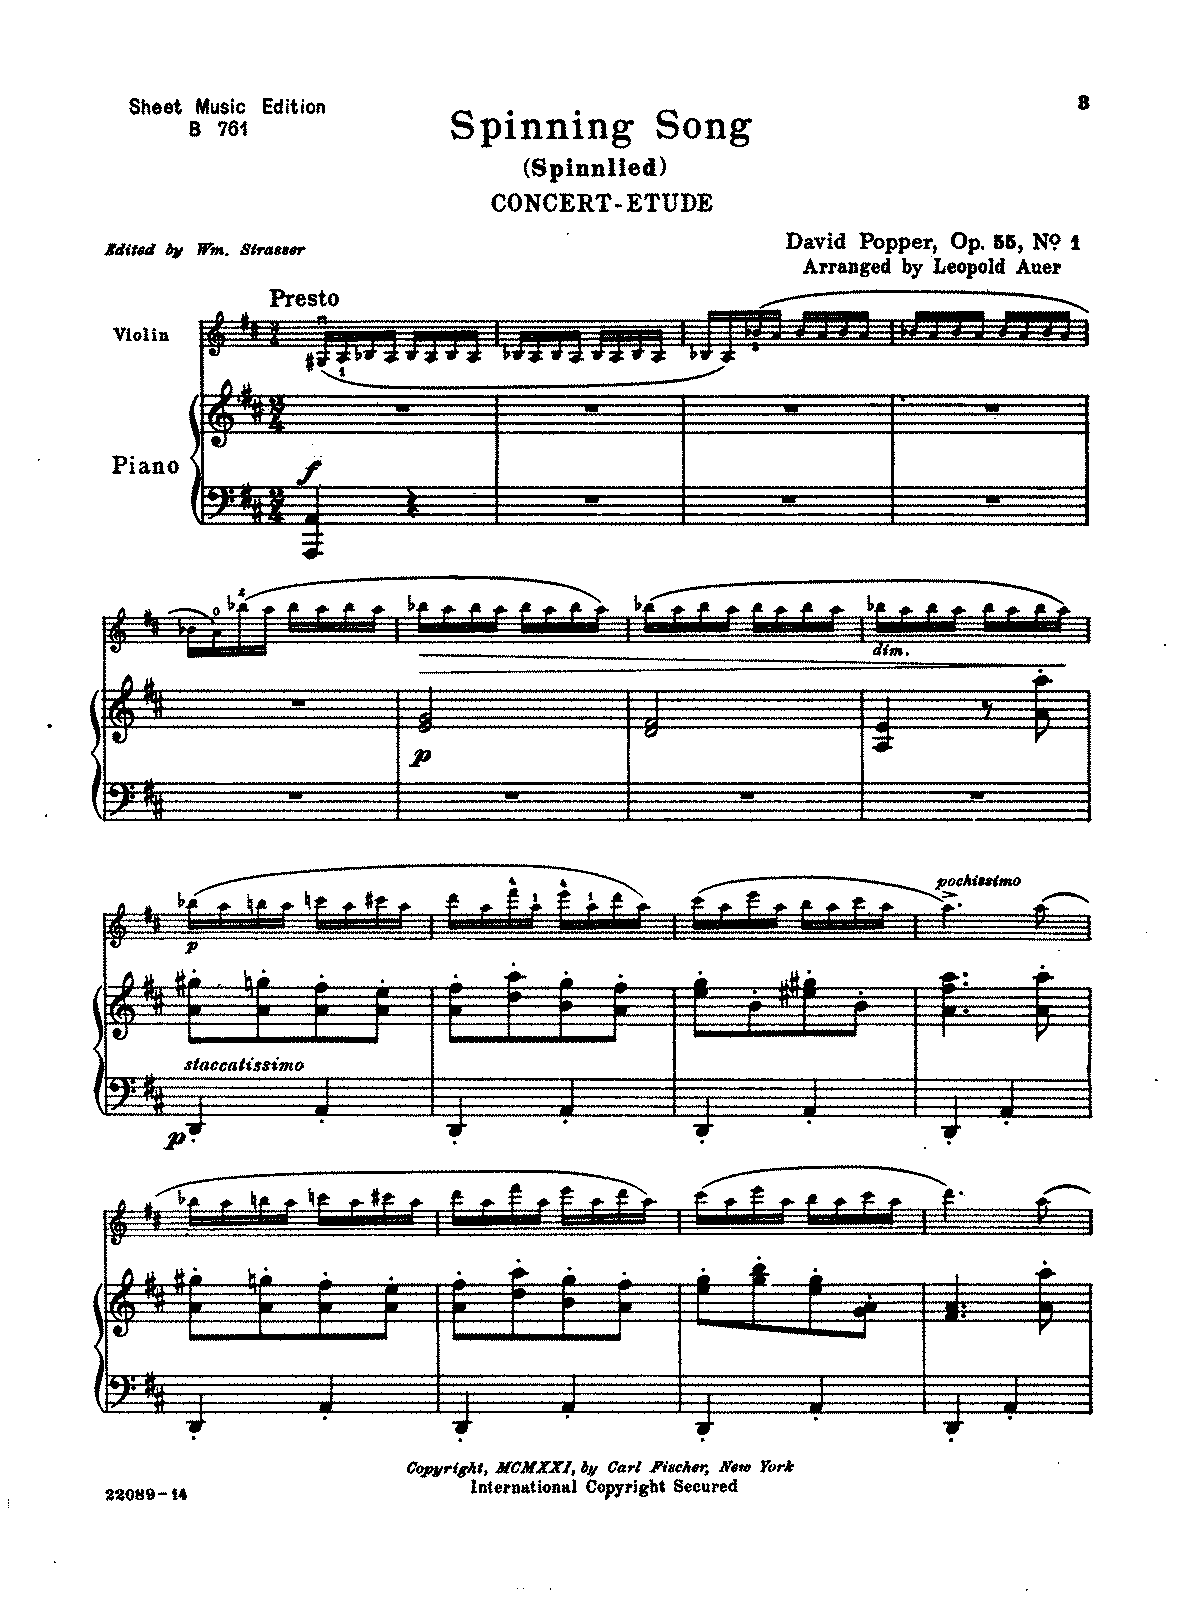 PMLP17379-Popper - Spinning Song Op55 No1 violin piano (Auer) piano.pdf